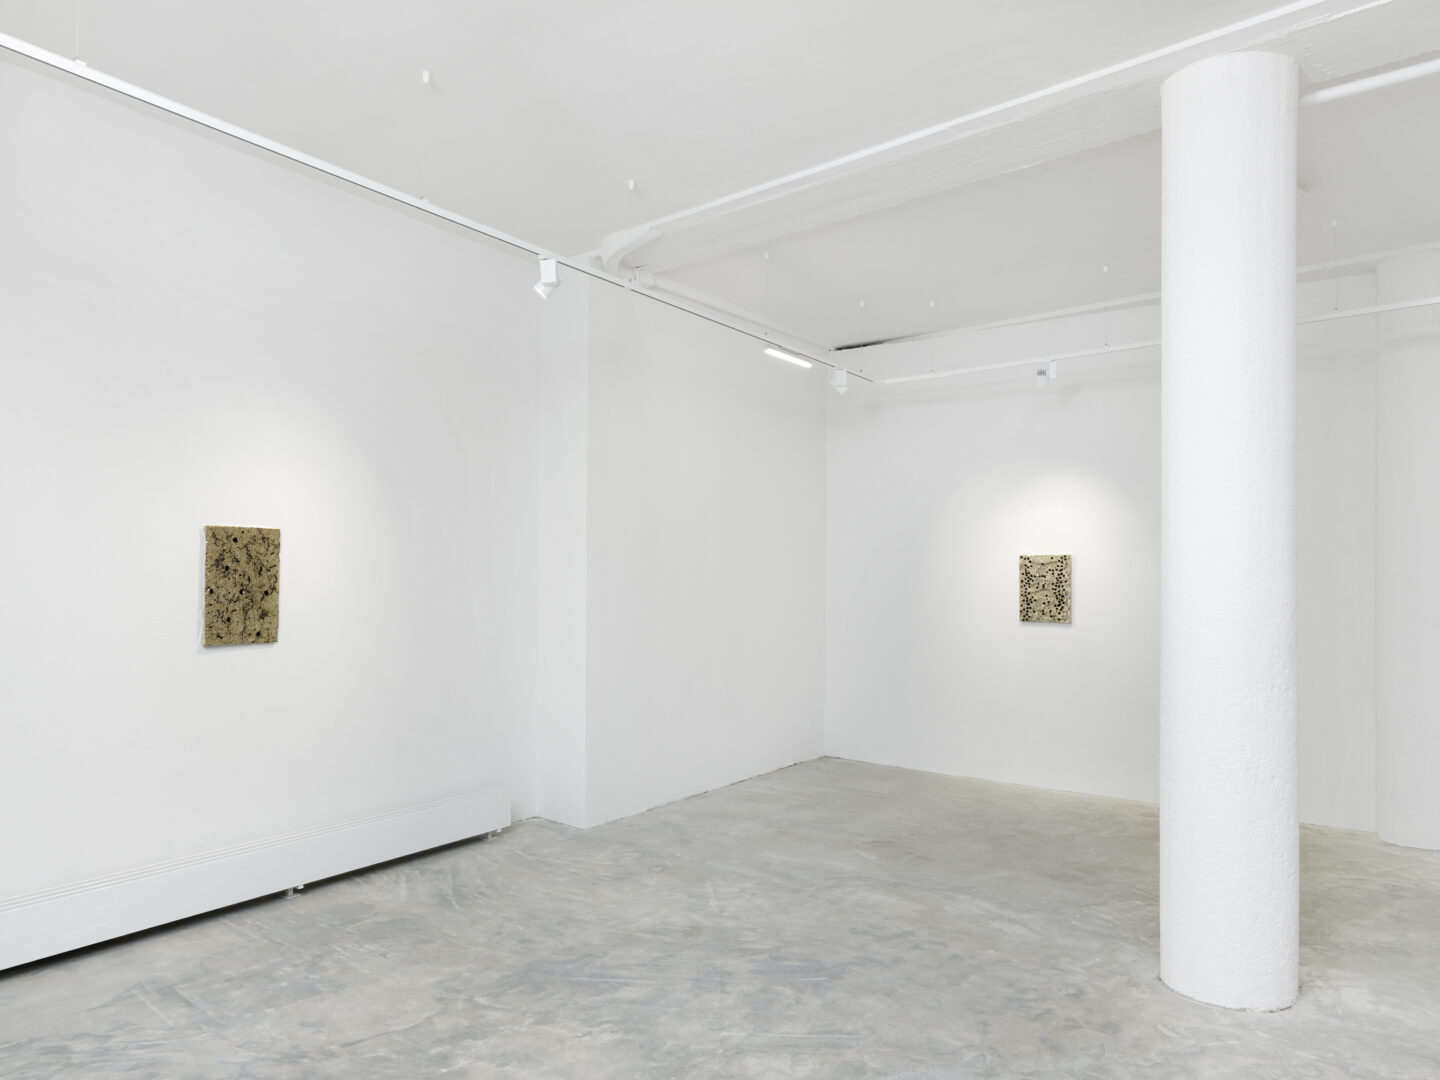 Exhibition View Davina Semo Soloshow «Agora» at Ribordy Thetaz, Geneva, 2019 / Photo: Annik Wetter / Courtesy: the artist and Ribordy Thetaz